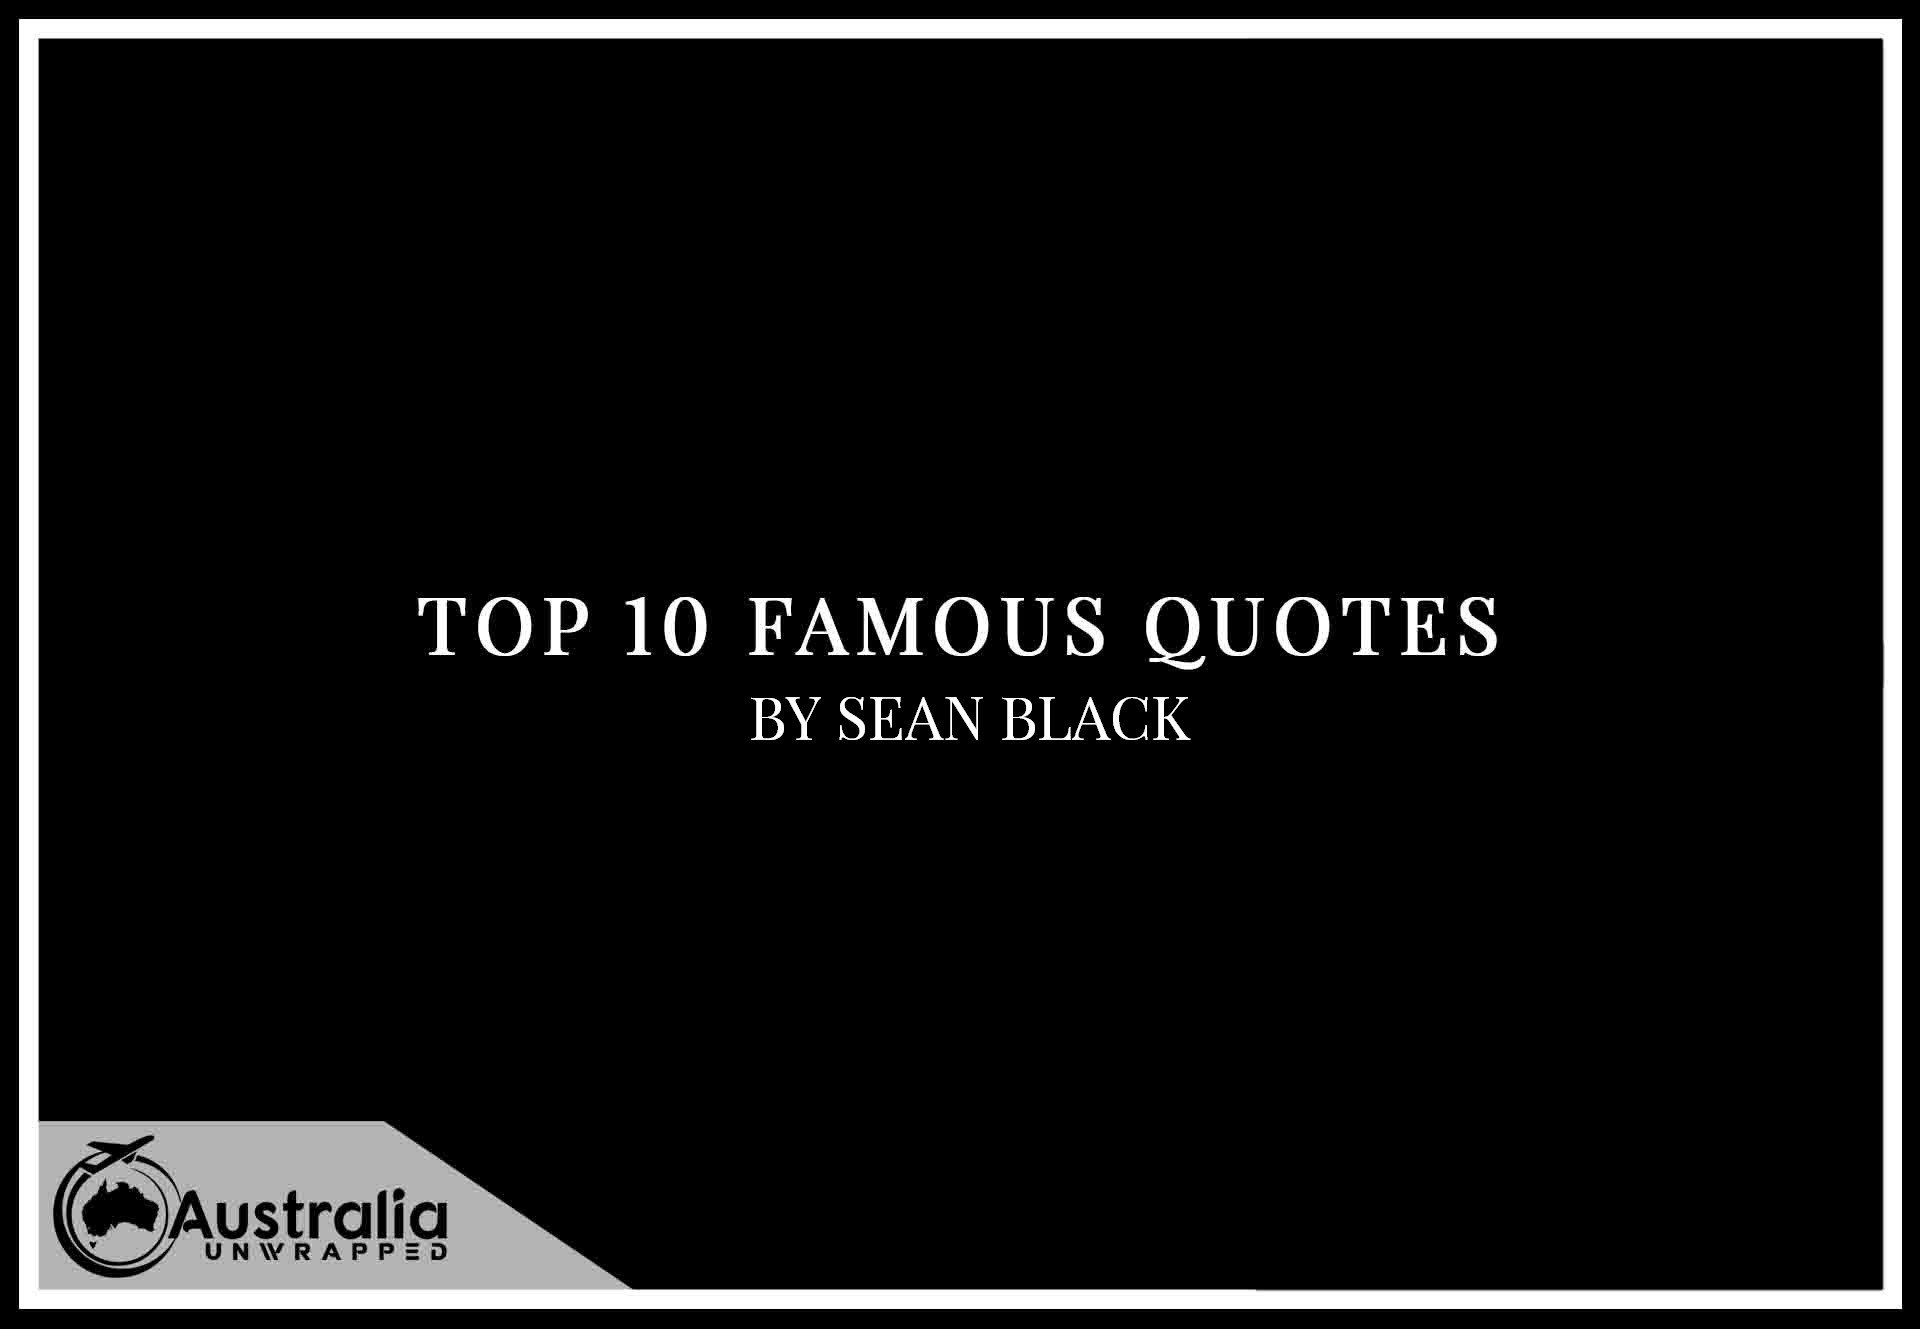 Top 10 Famous Quotes by Author Sean Black